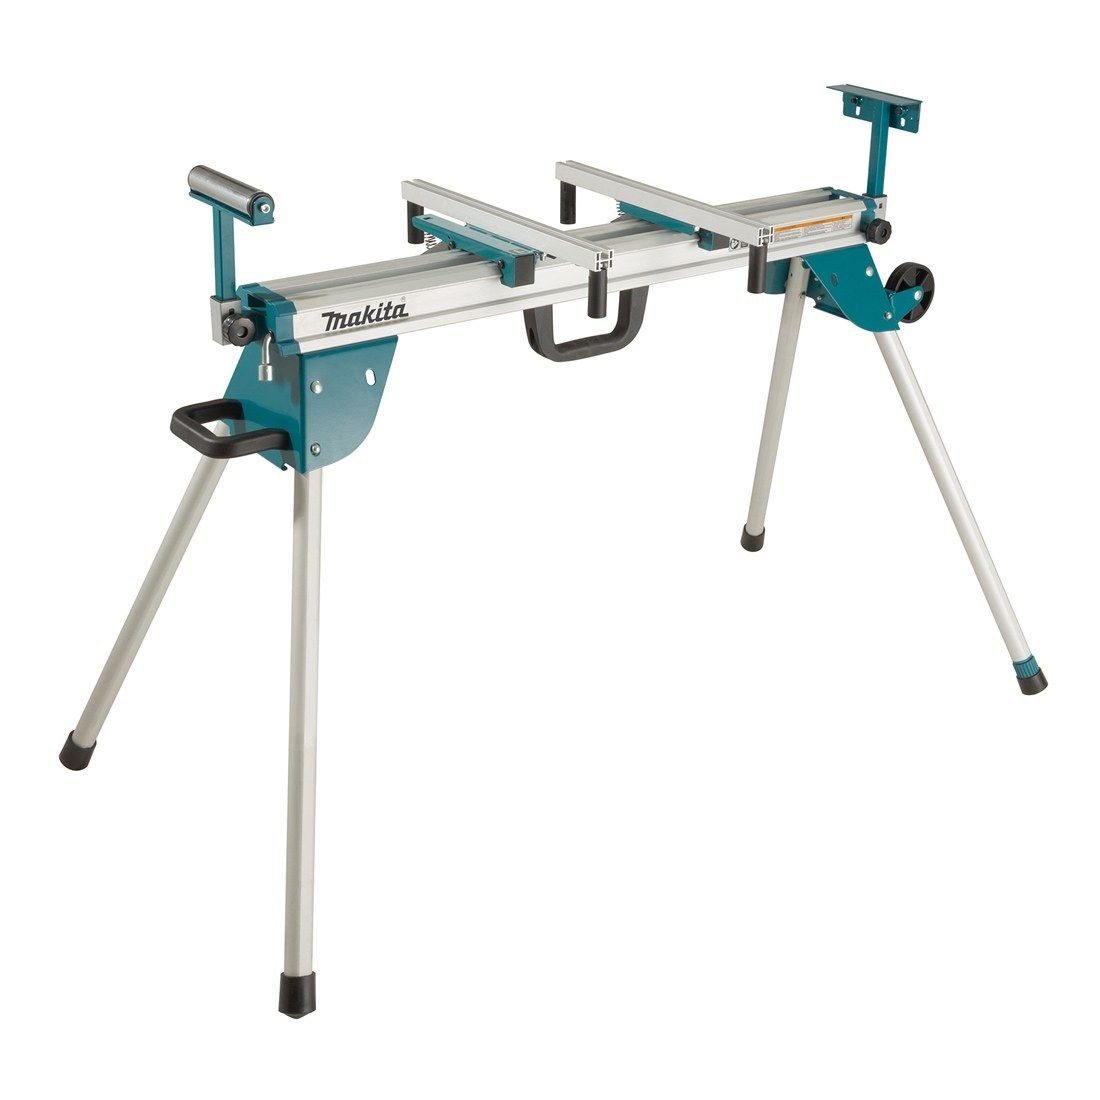 Makita Mitre Saw Stand V2 MAKDEBWST06   The Makita DEBWST06 is similar to the older DEAWST06 but with a new bracket design and upgraded clamps.   toolforce.ie